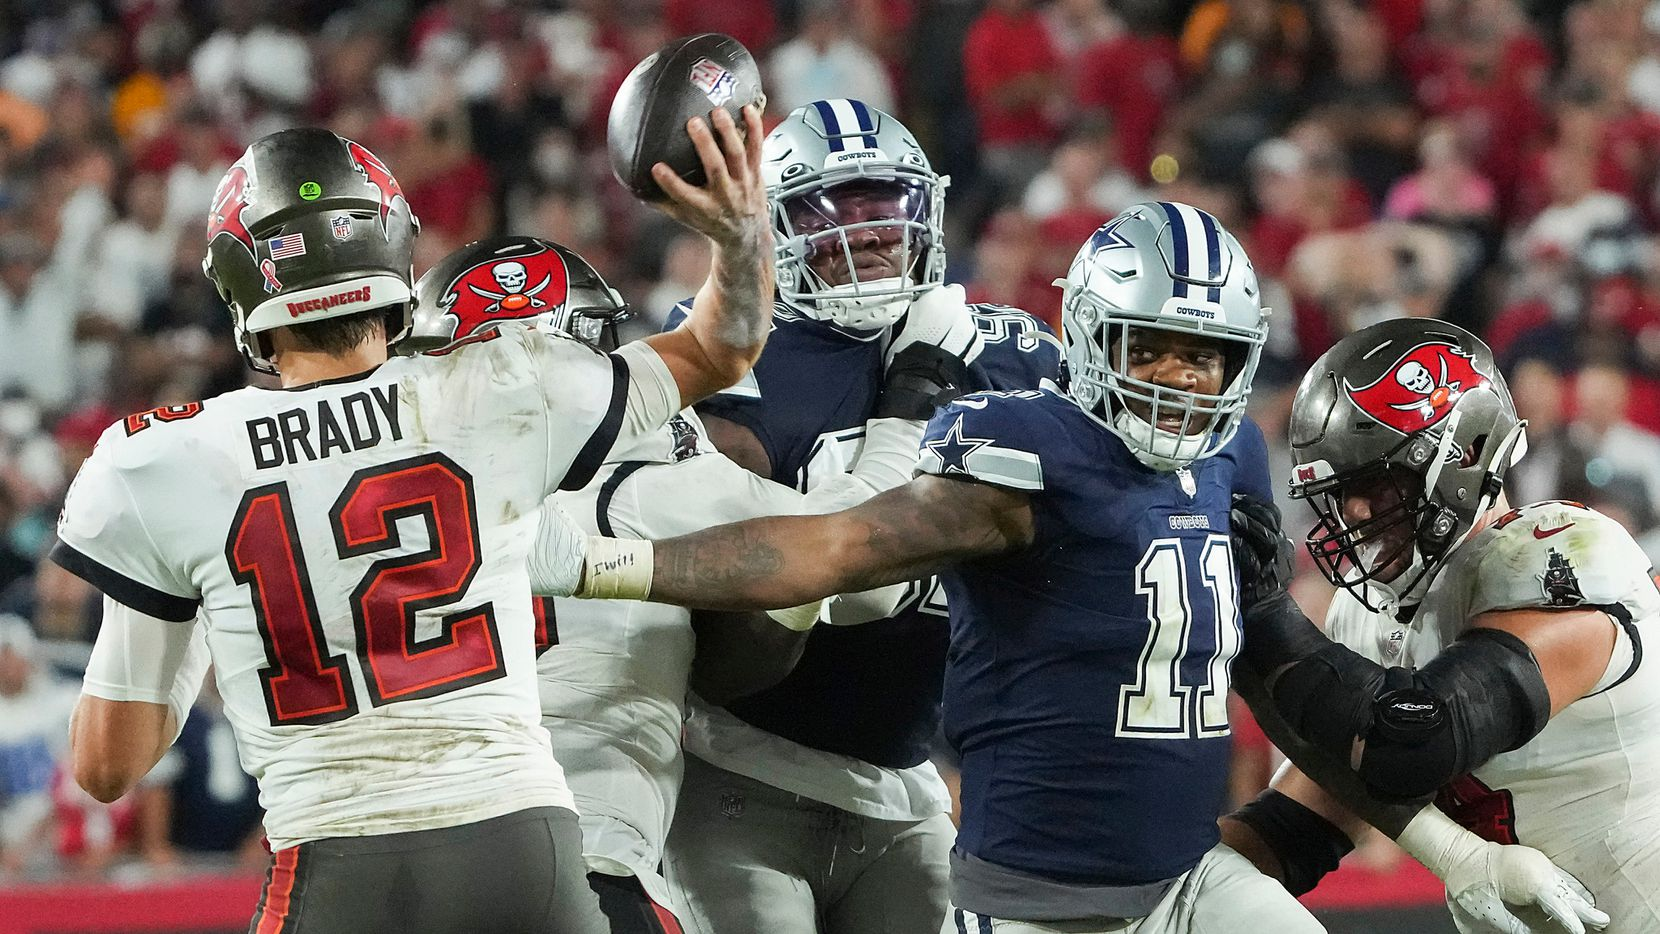 Tampa Bay Buccaneers quarterback Tom Brady (12) throws a pass under pressure from Dallas Cowboys linebacker Micah Parsons (11) during the second half of an NFL football game at Raymond James Stadium on Thursday, Sept. 9, 2021, in Tampa, Fla. The  Buccaneers won the game 31-29.